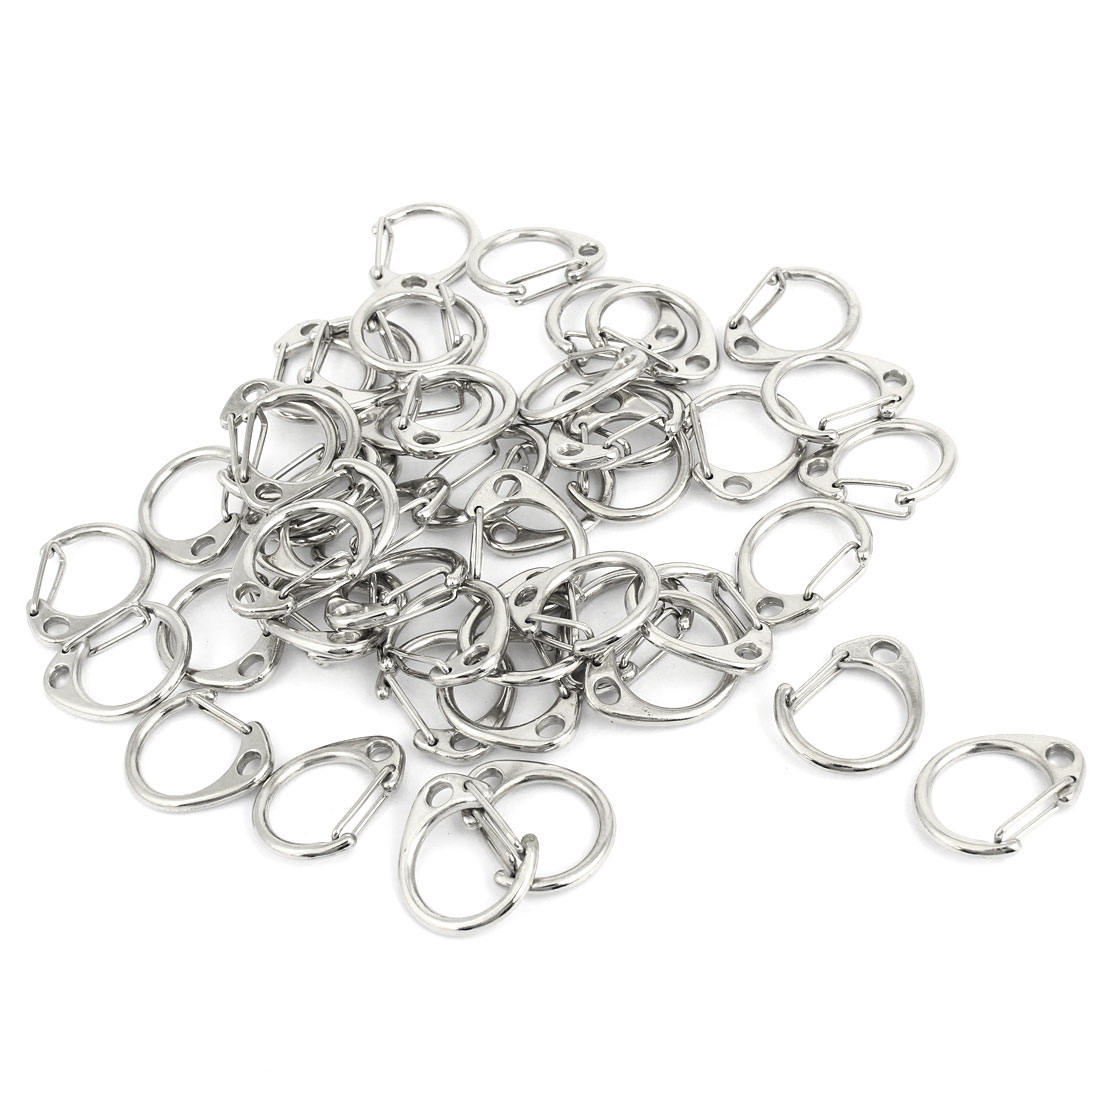 Keyring Handbags Pendant 27x23mm D Shaped Lobster Clasps Buckles 50 Pcs